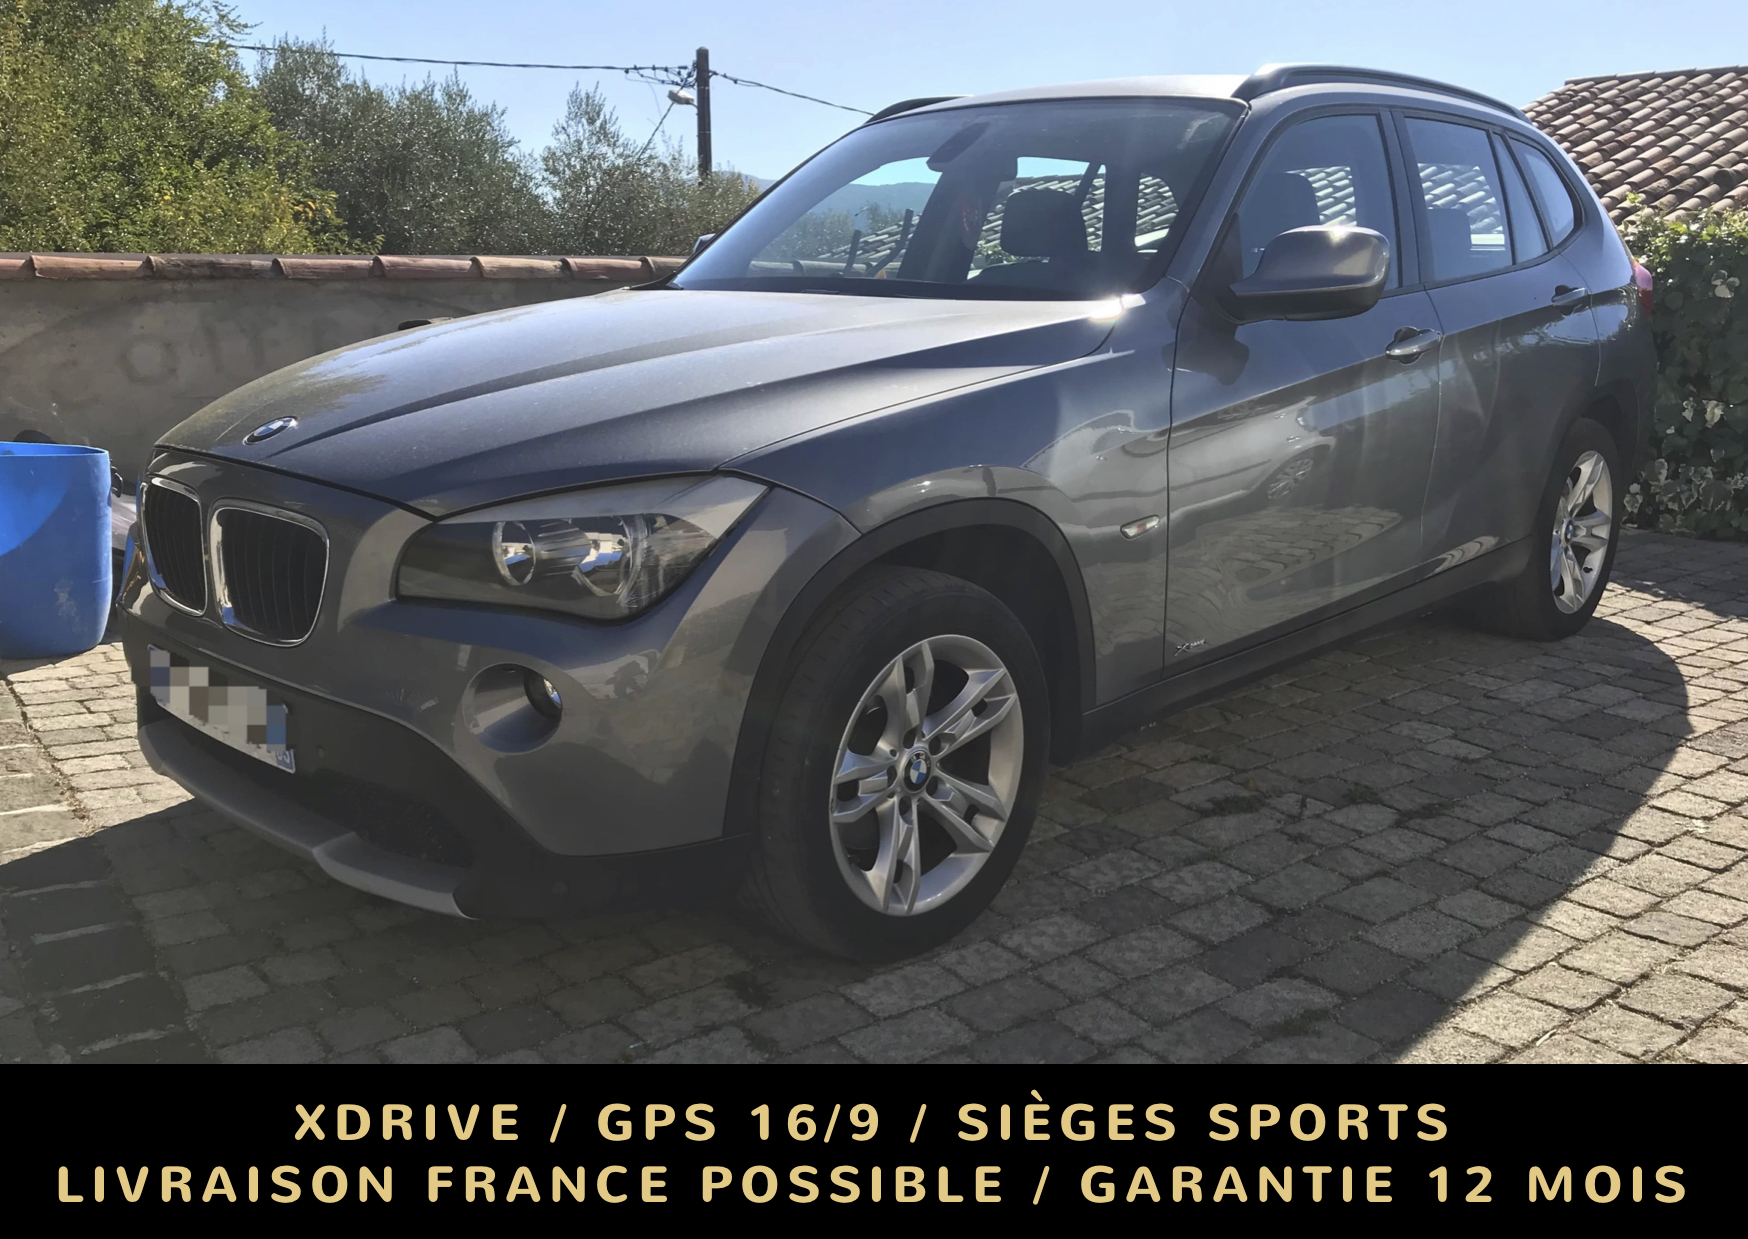 voiture bmw x1 xdrive 18d 143 ch confort occasion diesel 2012 103000 km 15390. Black Bedroom Furniture Sets. Home Design Ideas